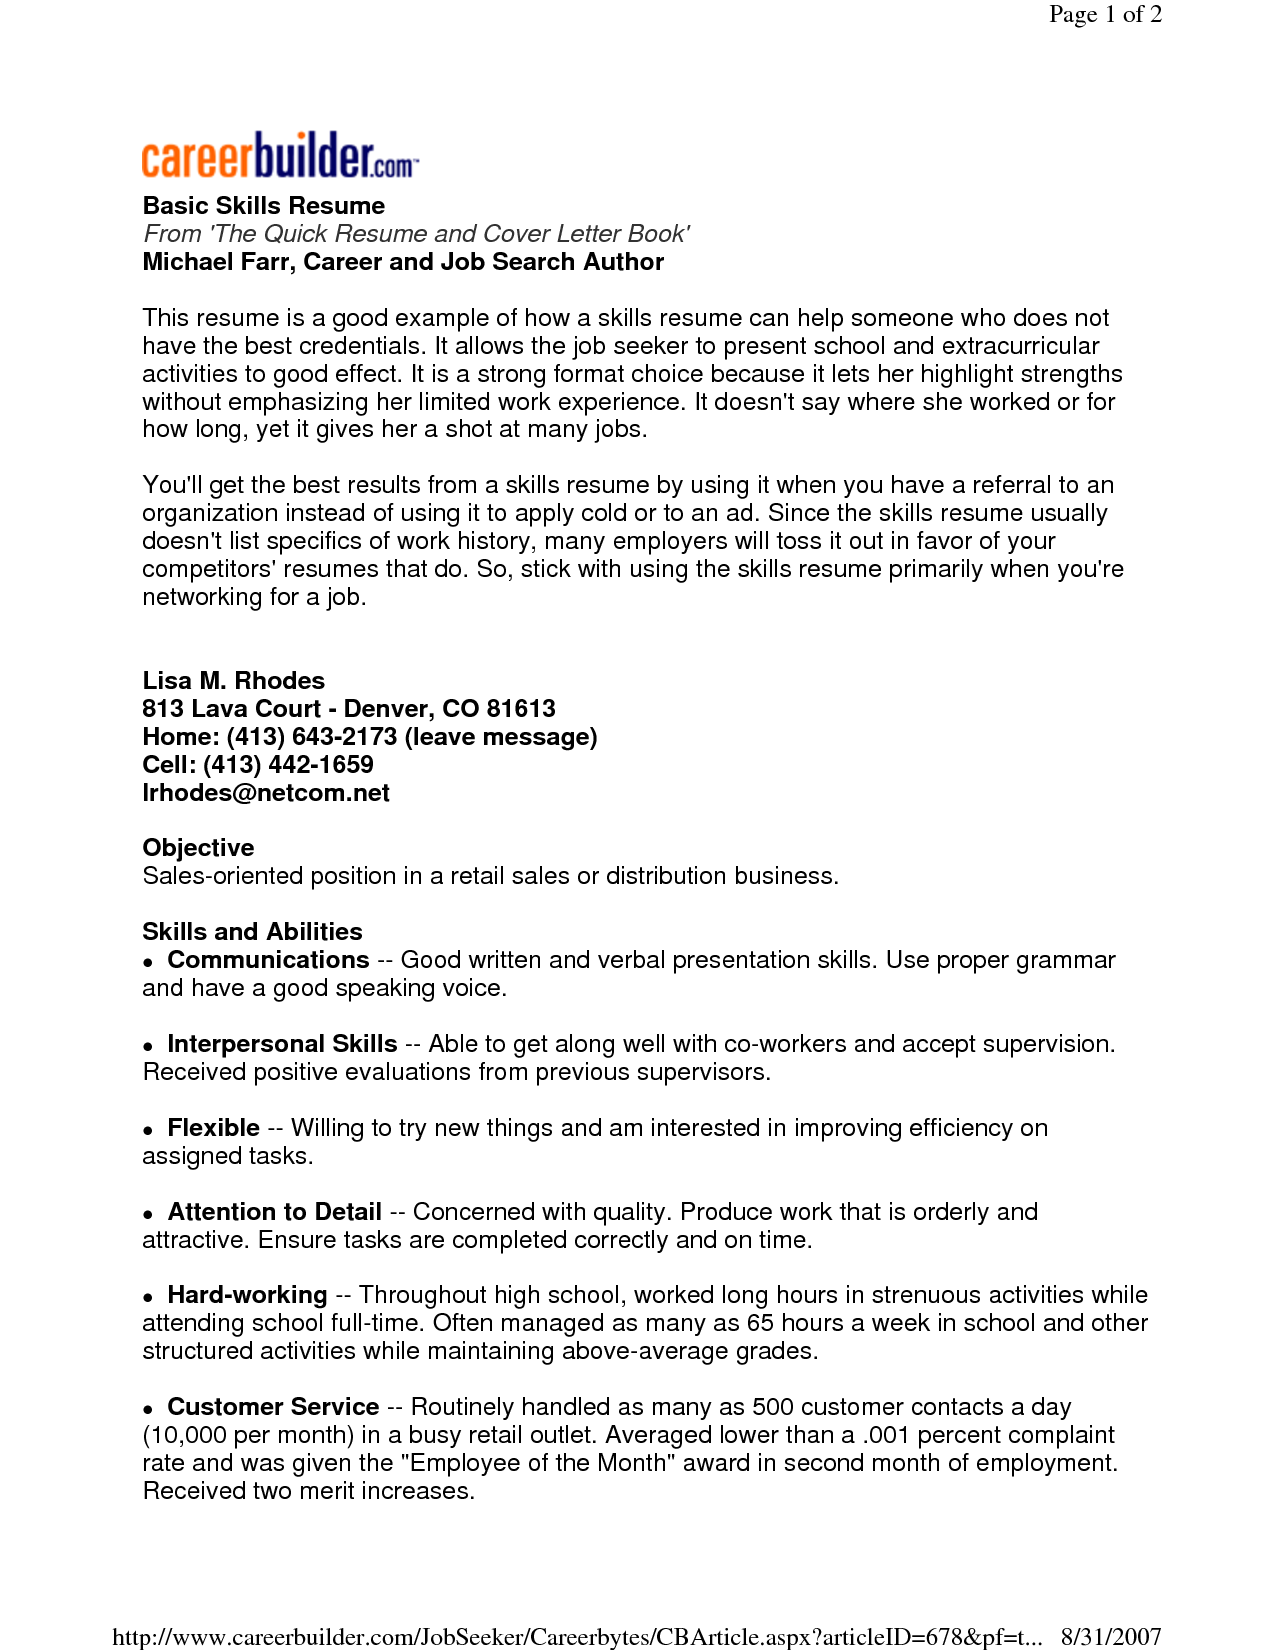 [ Example Resume Basic Computer Skills Summary Skill Sample Resumes Cover  Letters Interviews Assembly And ]   Best Free Home Design Idea U0026 Inspiration  Work Skills Resume